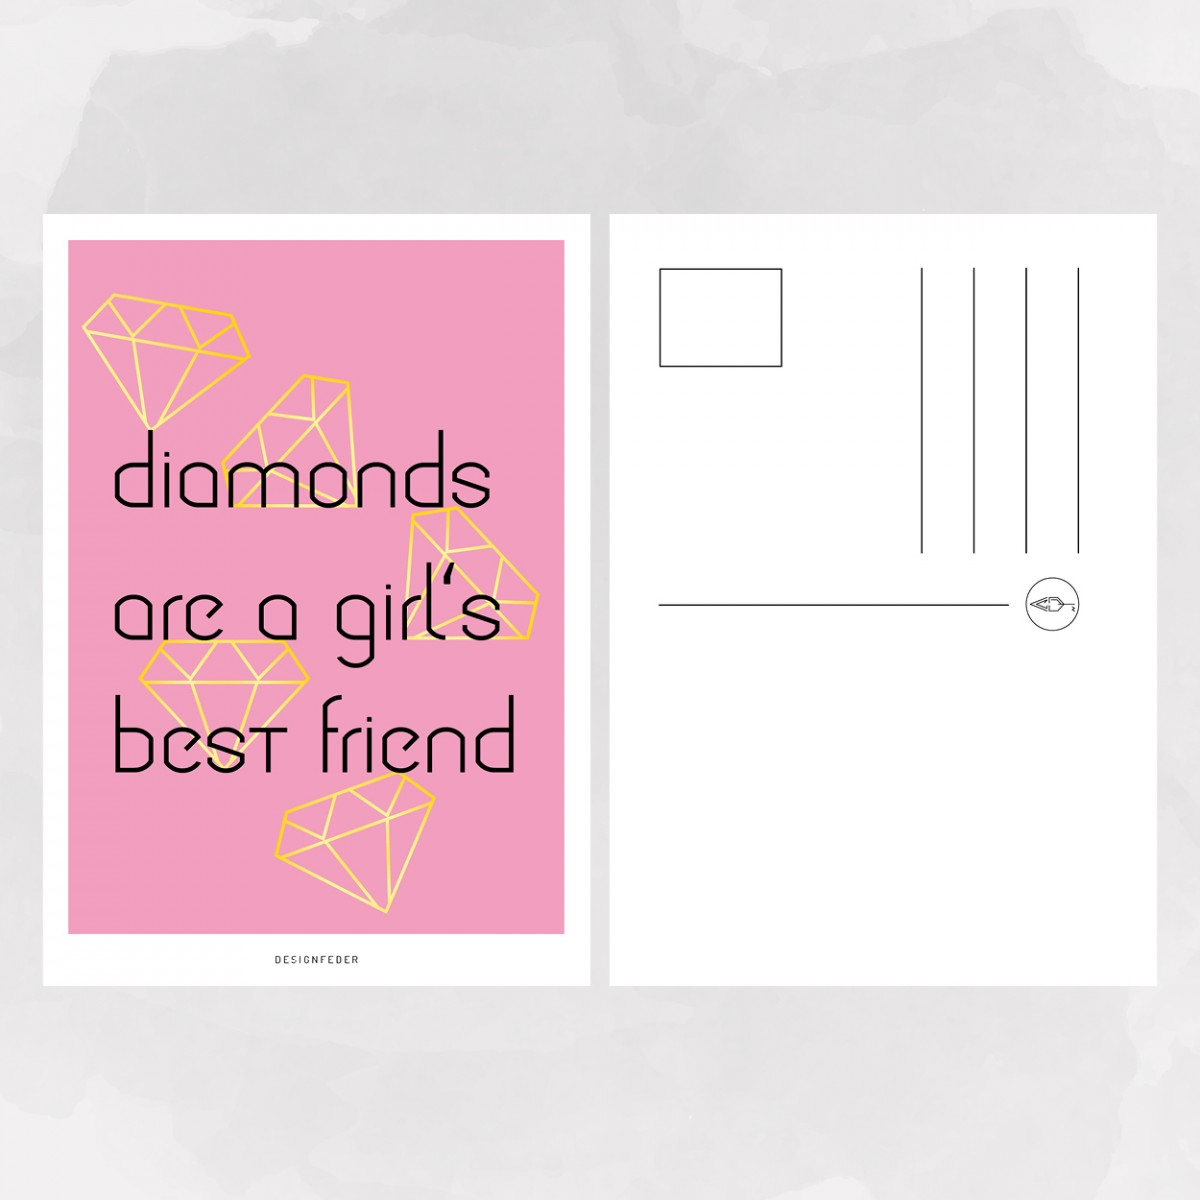 designfeder | Postkarte Diamonds